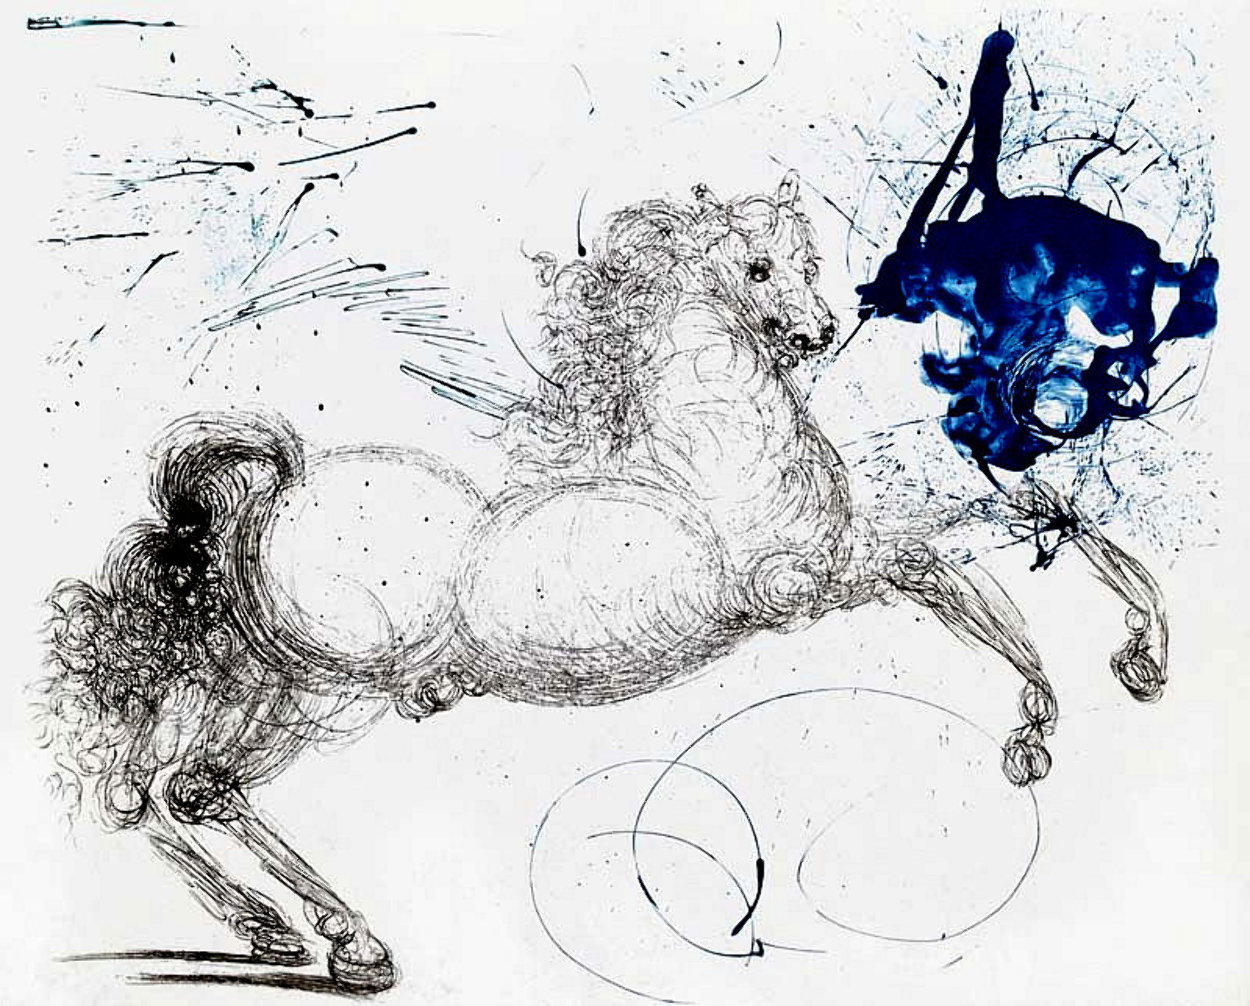 Pegasus: Mythology Series 1963 (Very Early) Limited Edition Print by Salvador Dali